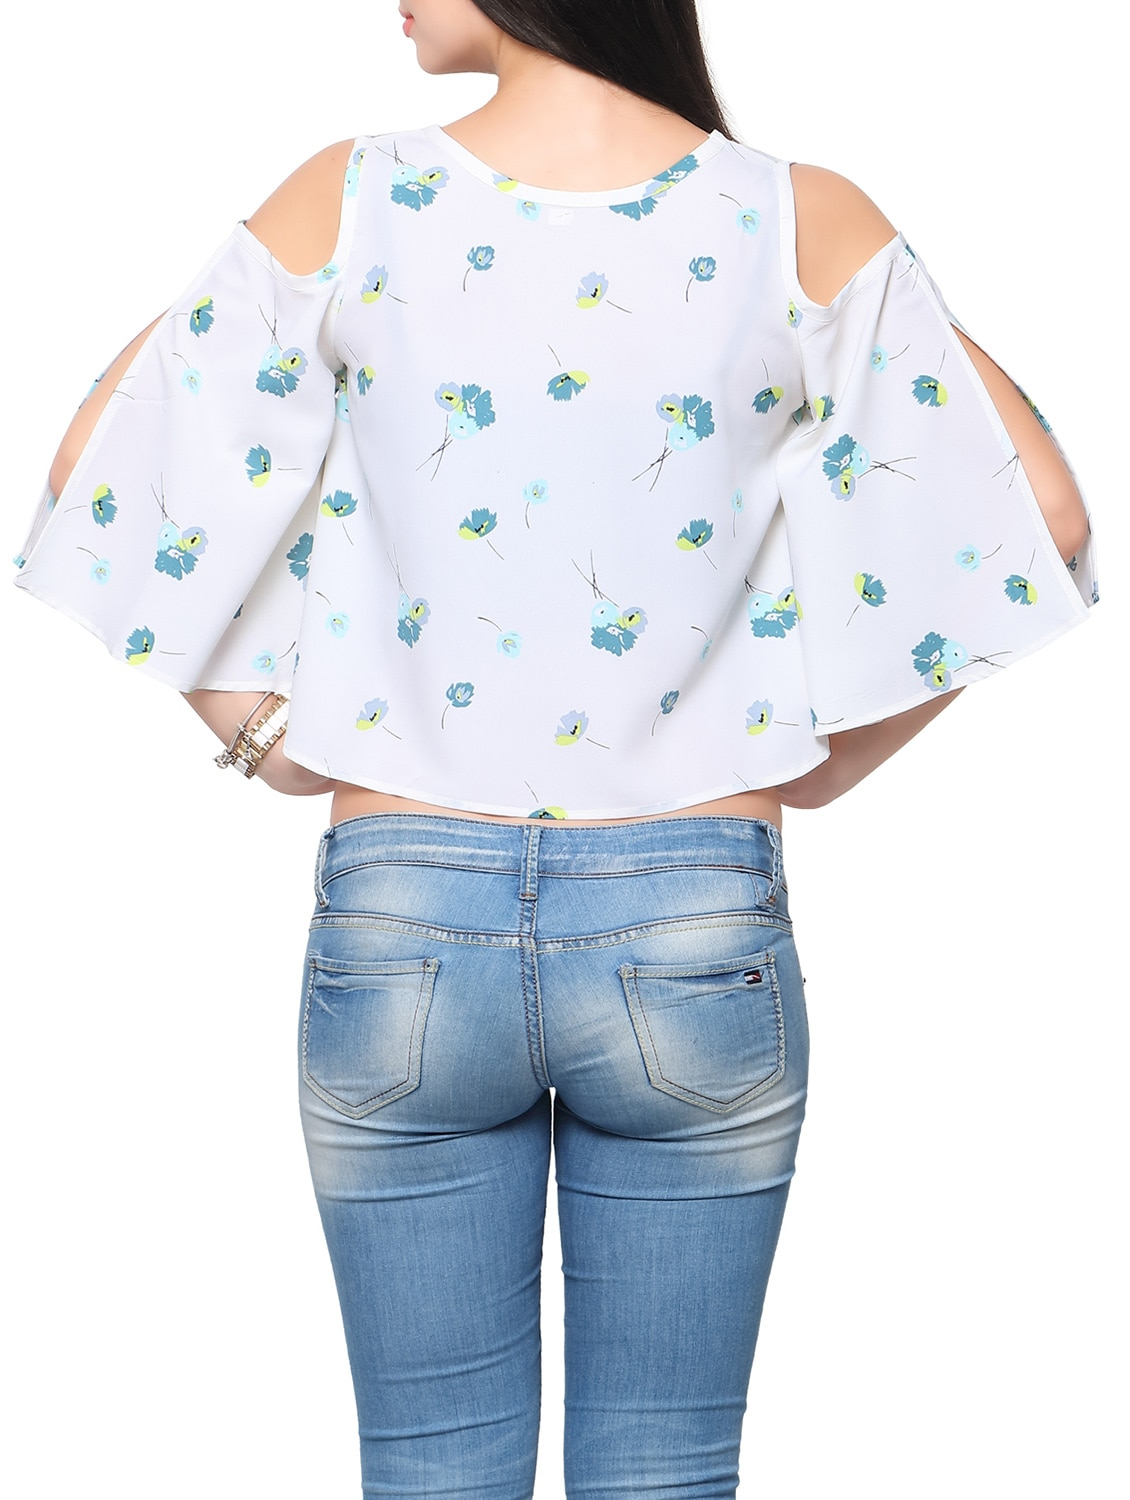 f633f3f6f6d Buy White Floral Printed Crepe Crop Top for Women from Ahalyaa for ₹454 at  58% off | 2019 Limeroad.com